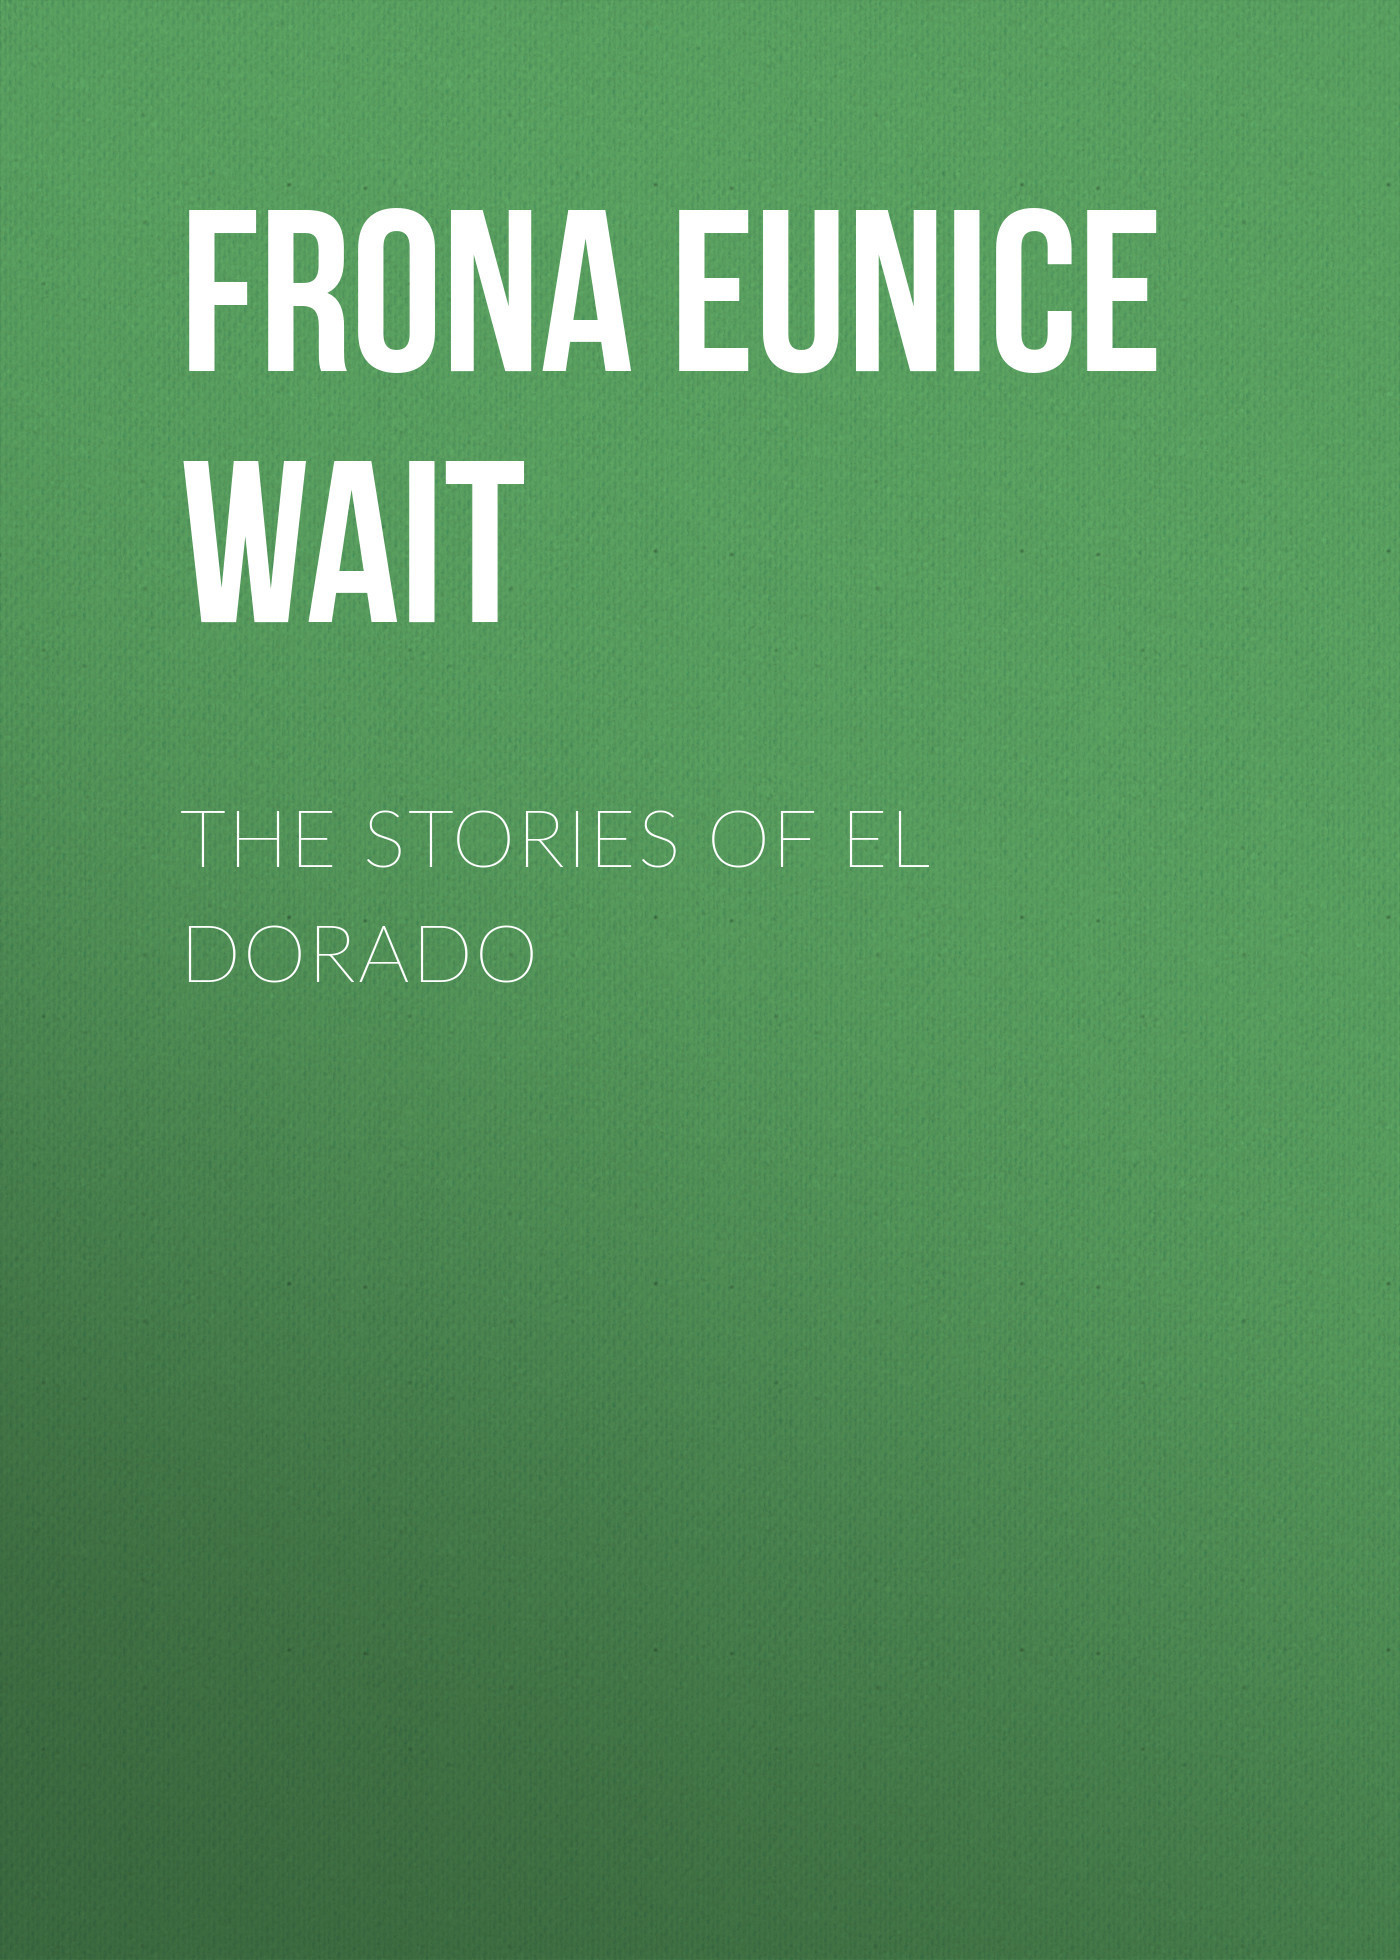 Frona Eunice Wait The Stories of El Dorado cd shakira el dorado